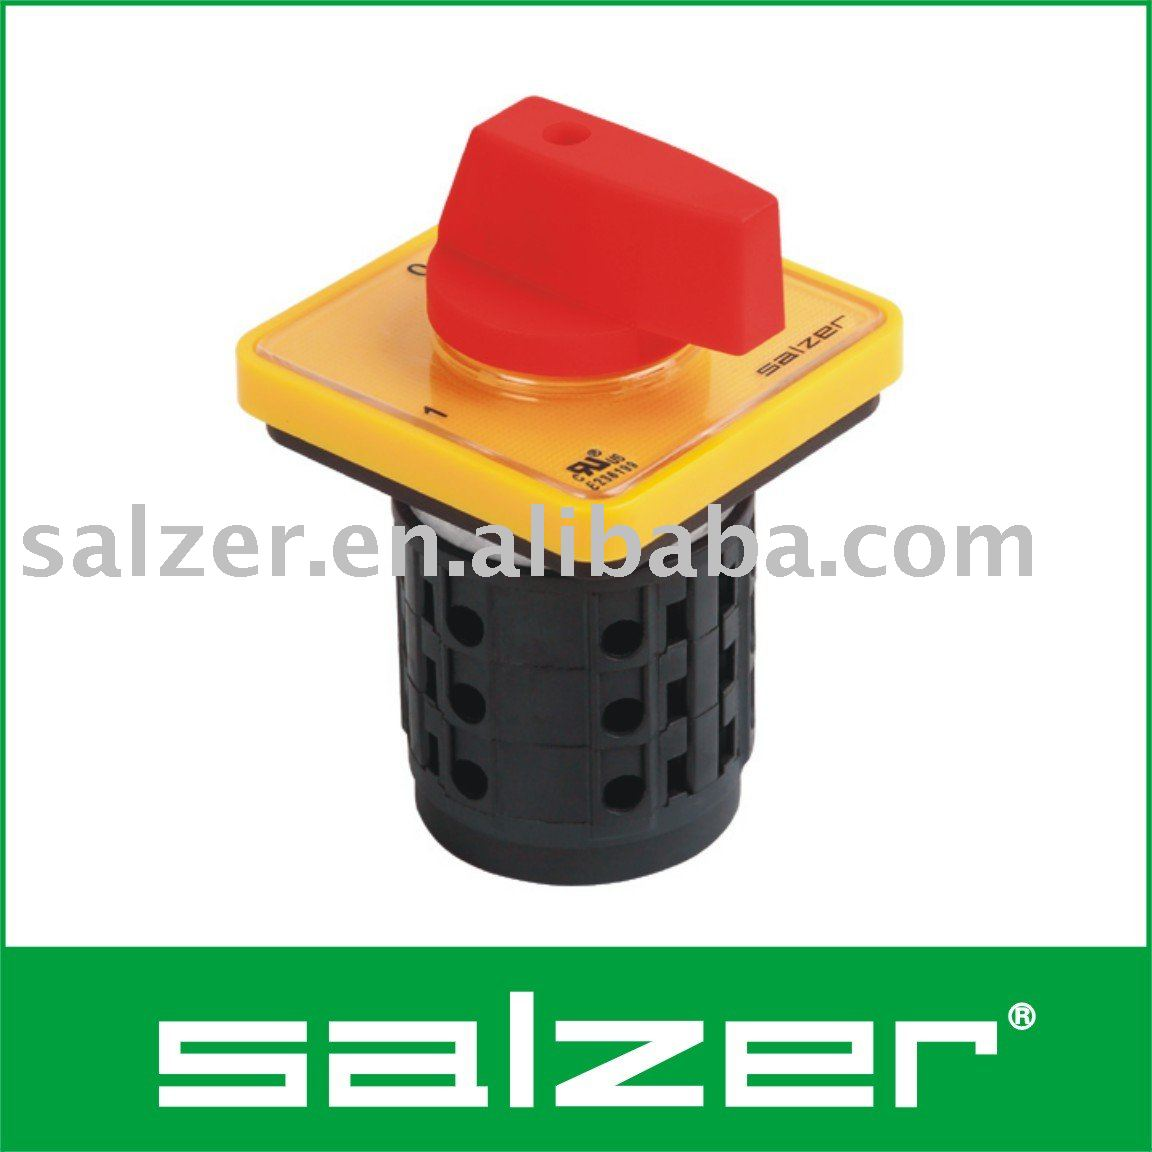 Salzer AC Change over switch UL File sa16 a b, sa16 a b suppliers and manufacturers at alibaba com salzer switches wiring diagram at crackthecode.co